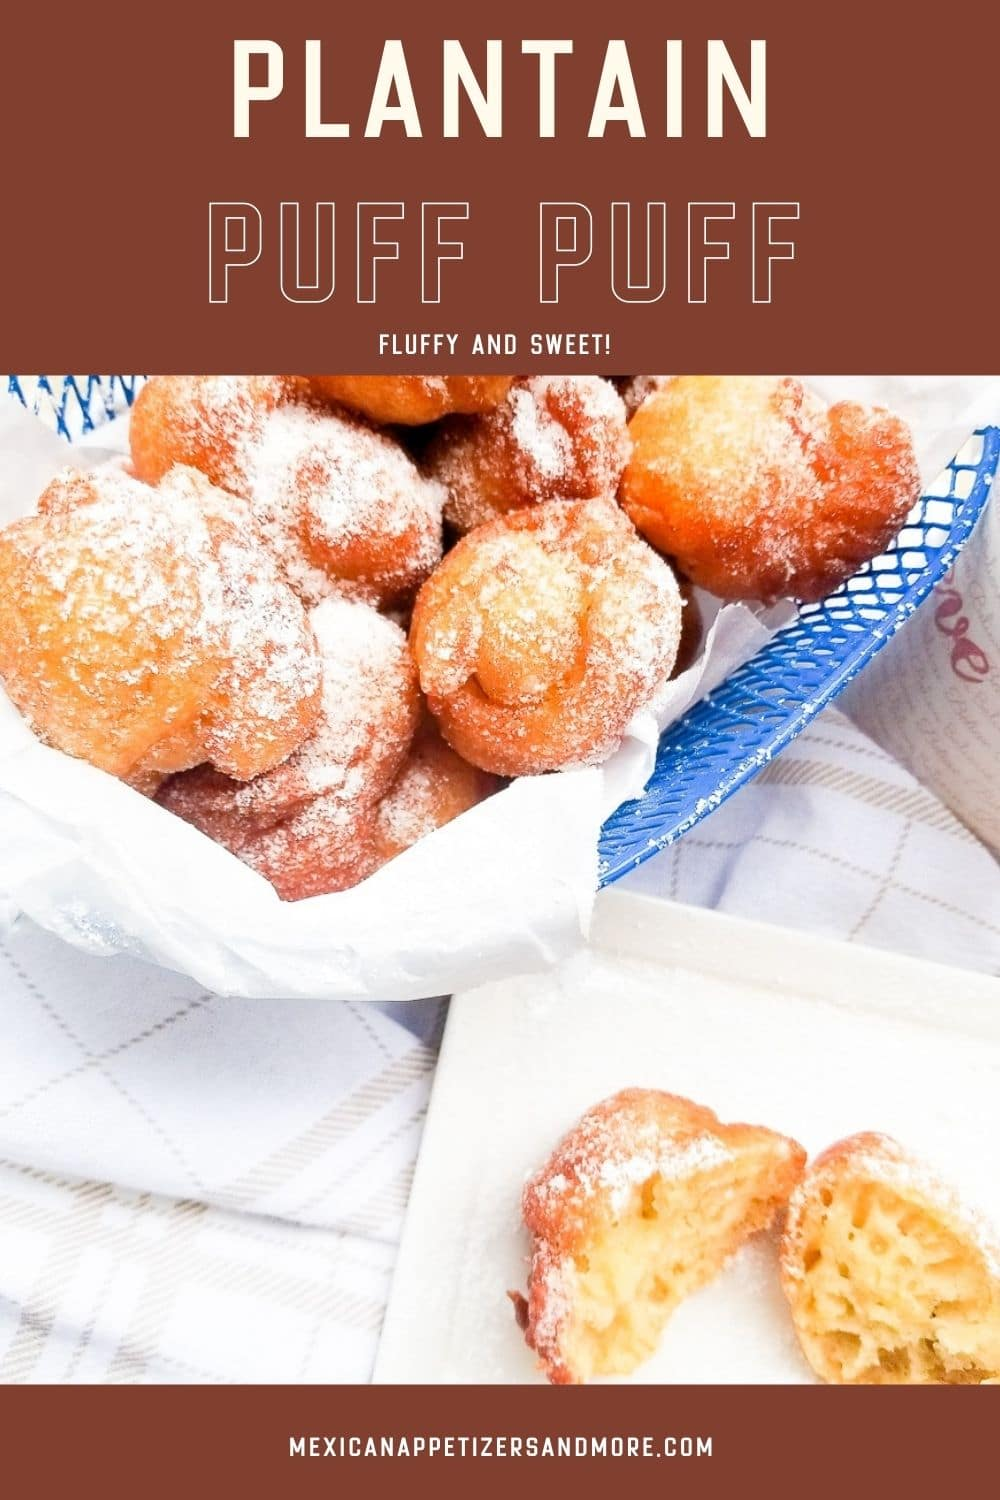 Plantain Puff Puff Recipe